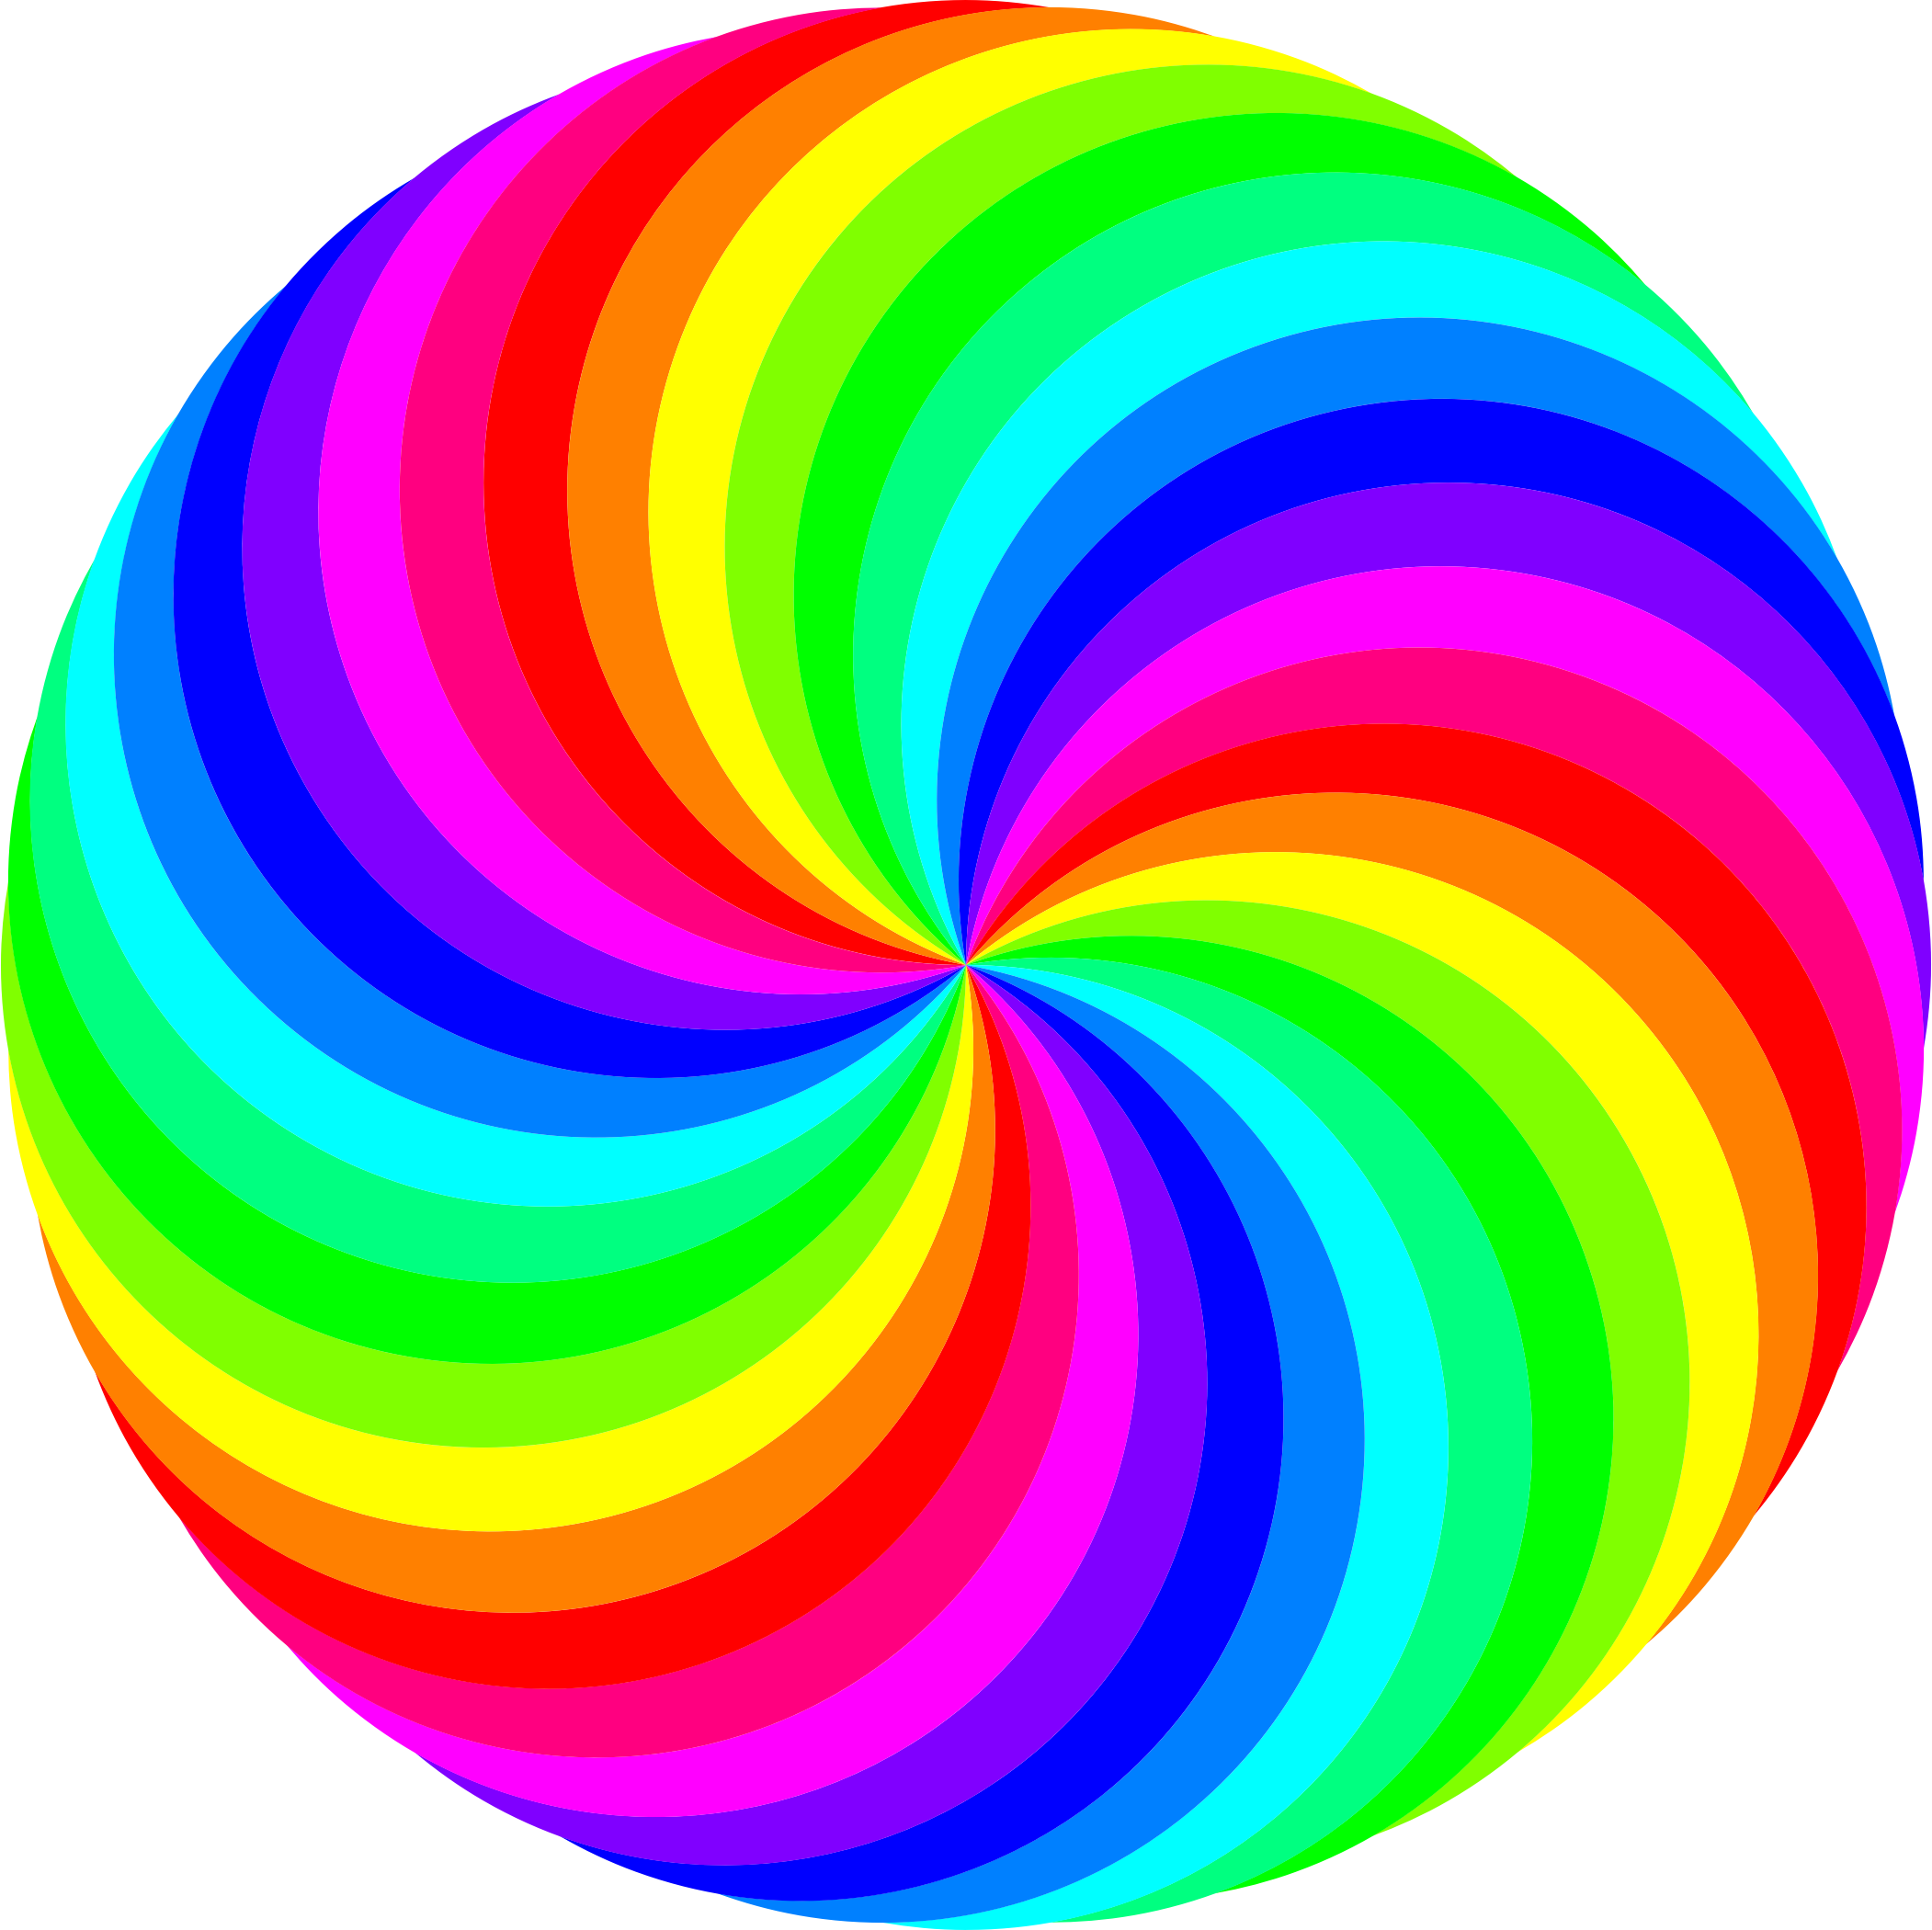 swirl color by. Circle clipart tie dye